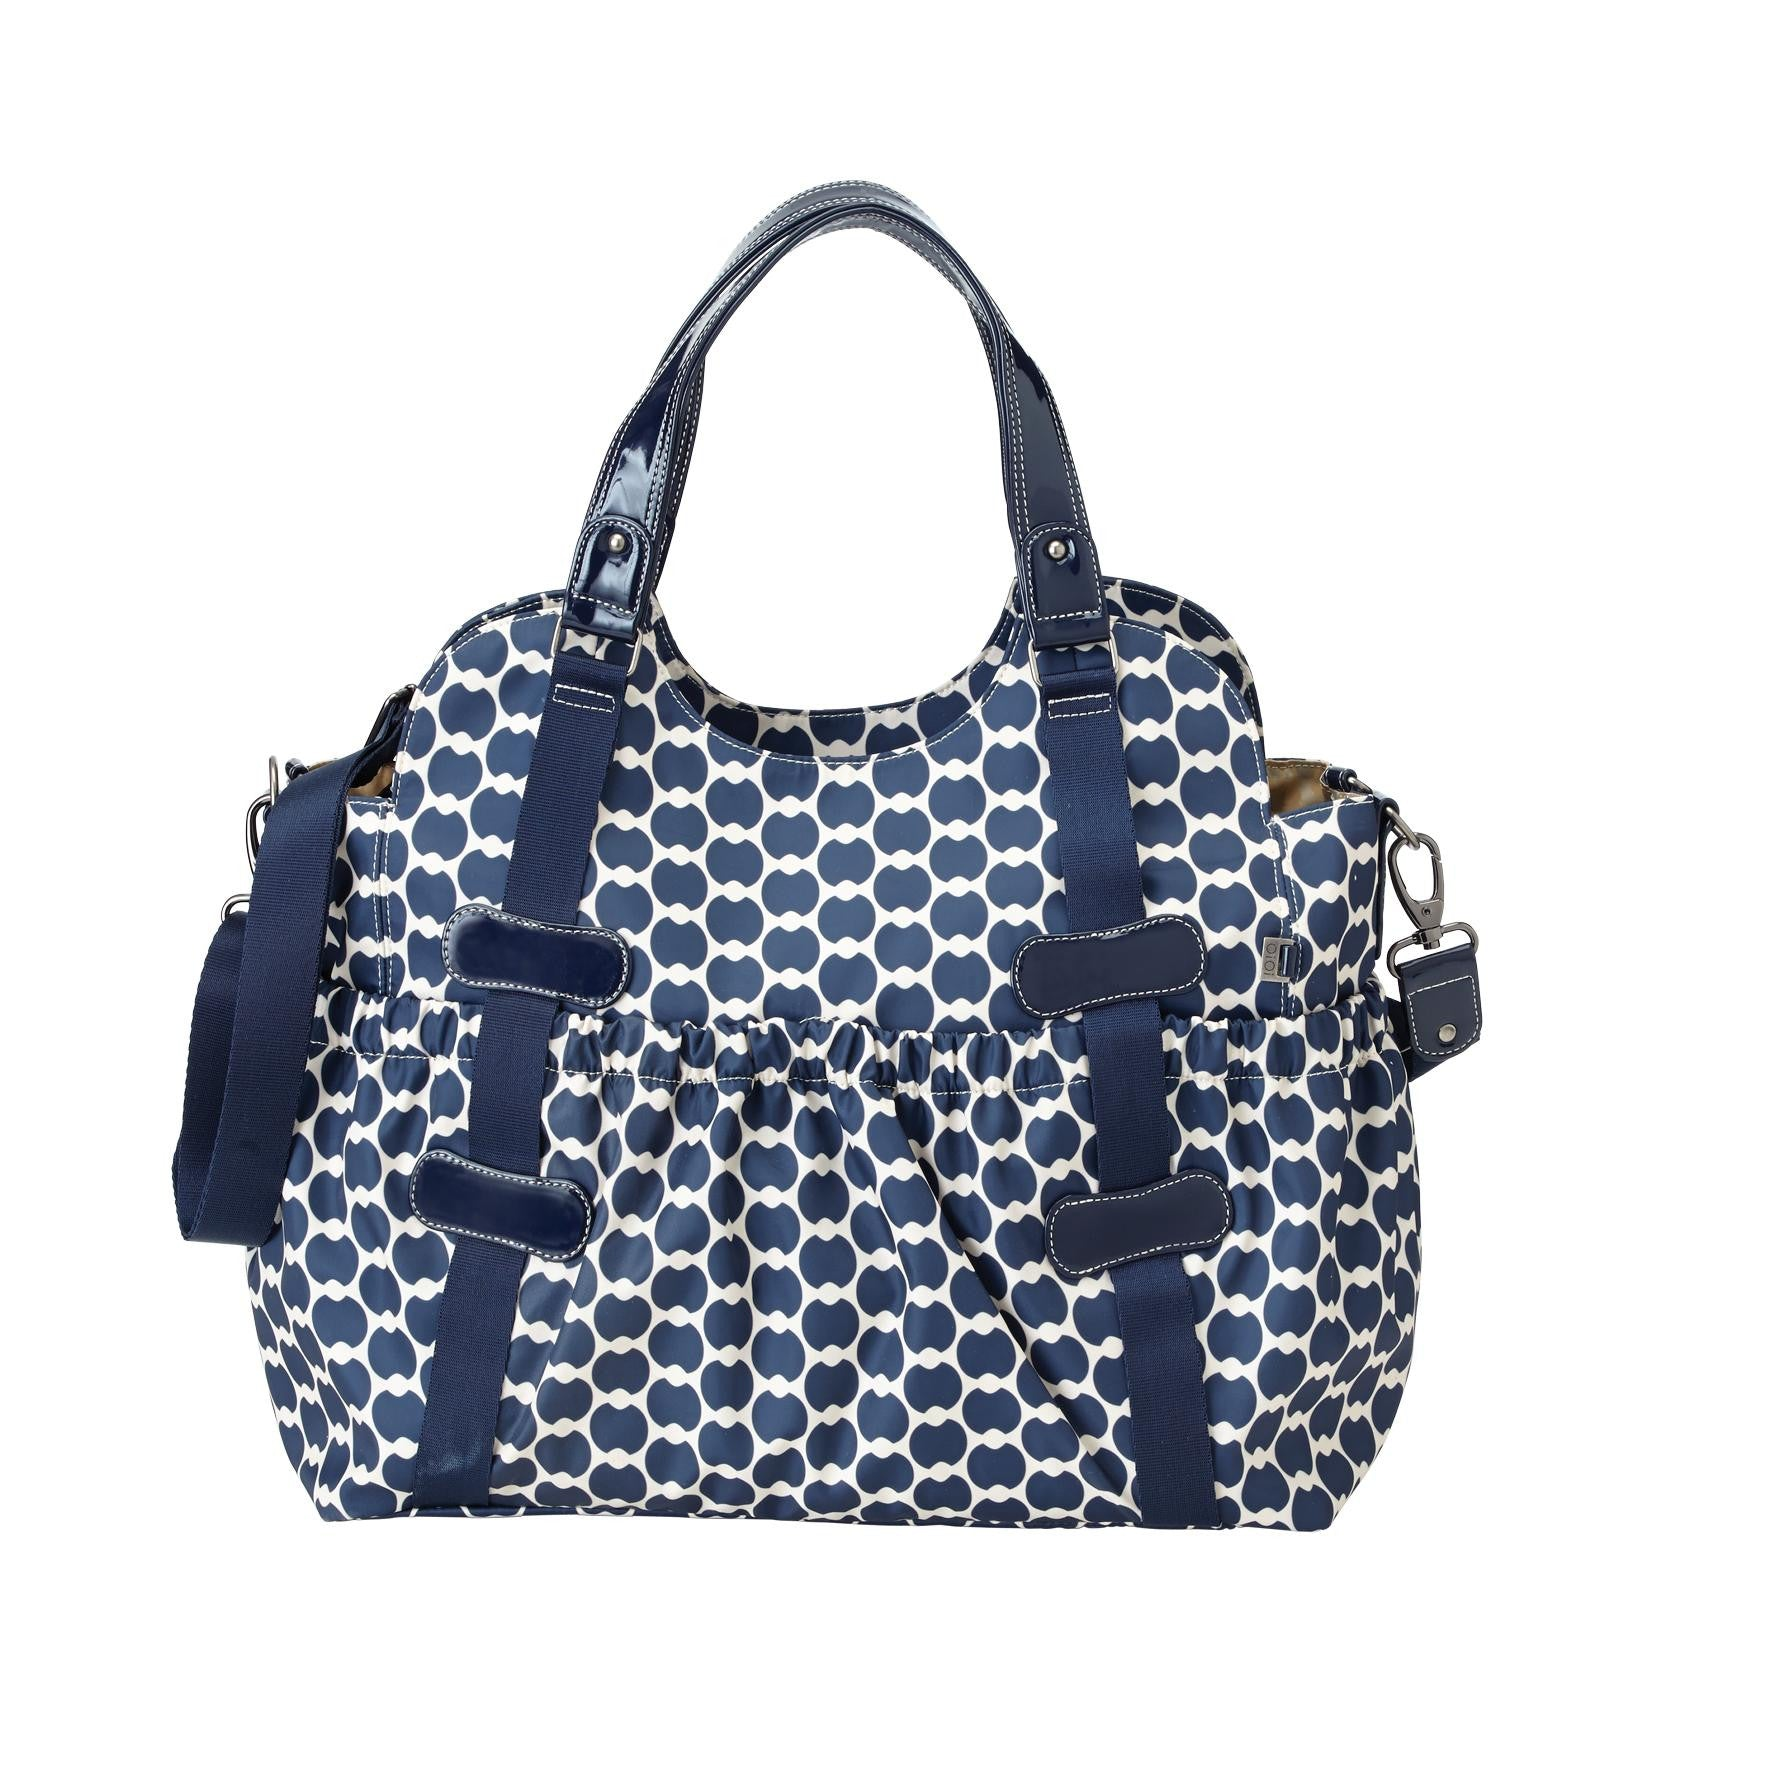 diaper bag designer sale 0rdt  OiOi Eclipse Dot Tote Diaperbag